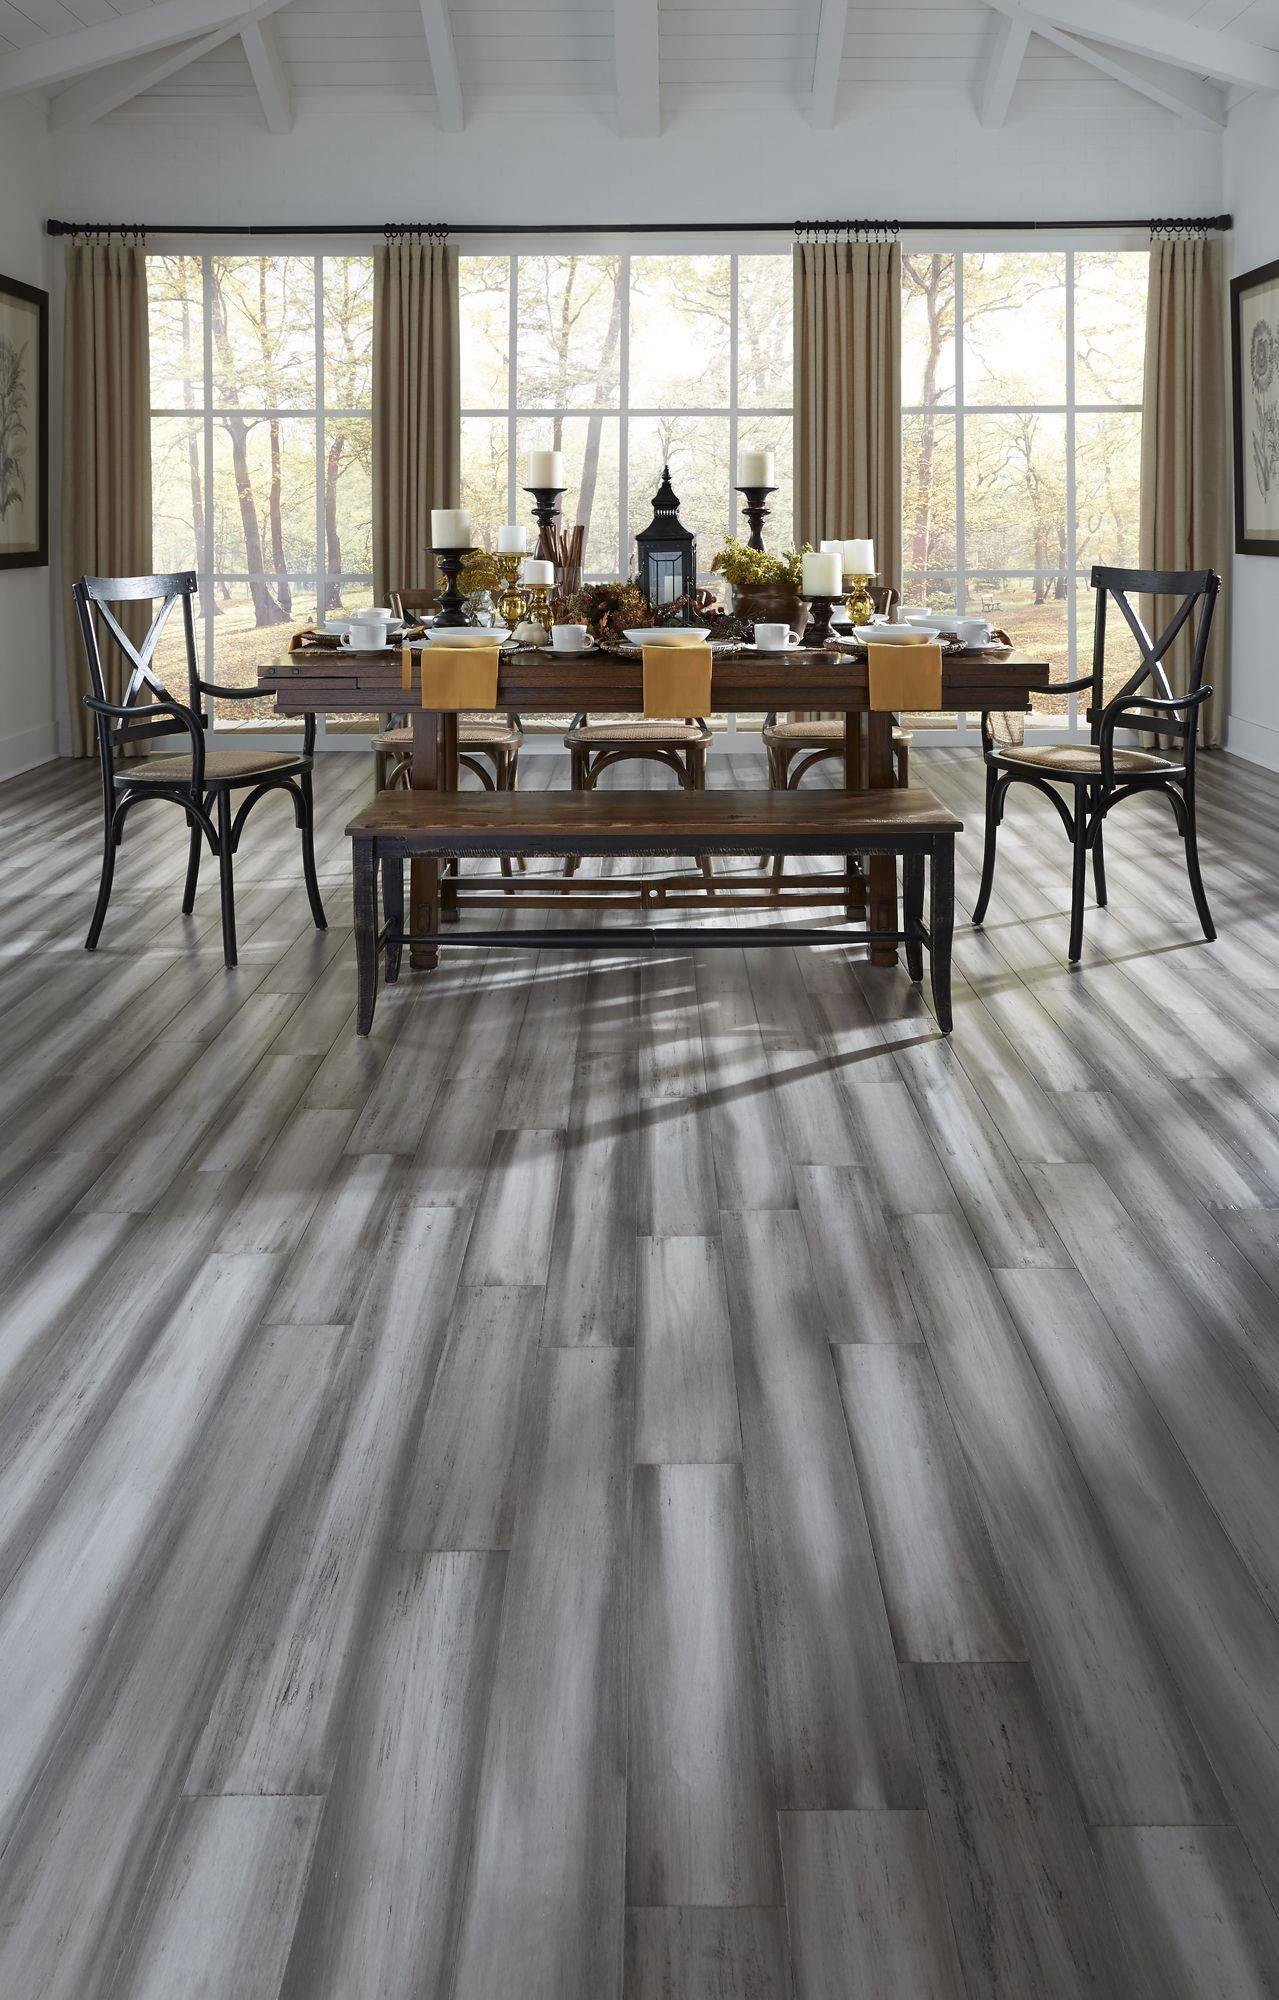 is bamboo hardwood flooring good of modern design and rustic texture pair perfectly with the stately for pair perfectly with the stately blend of light and dark gray shades to offer instant